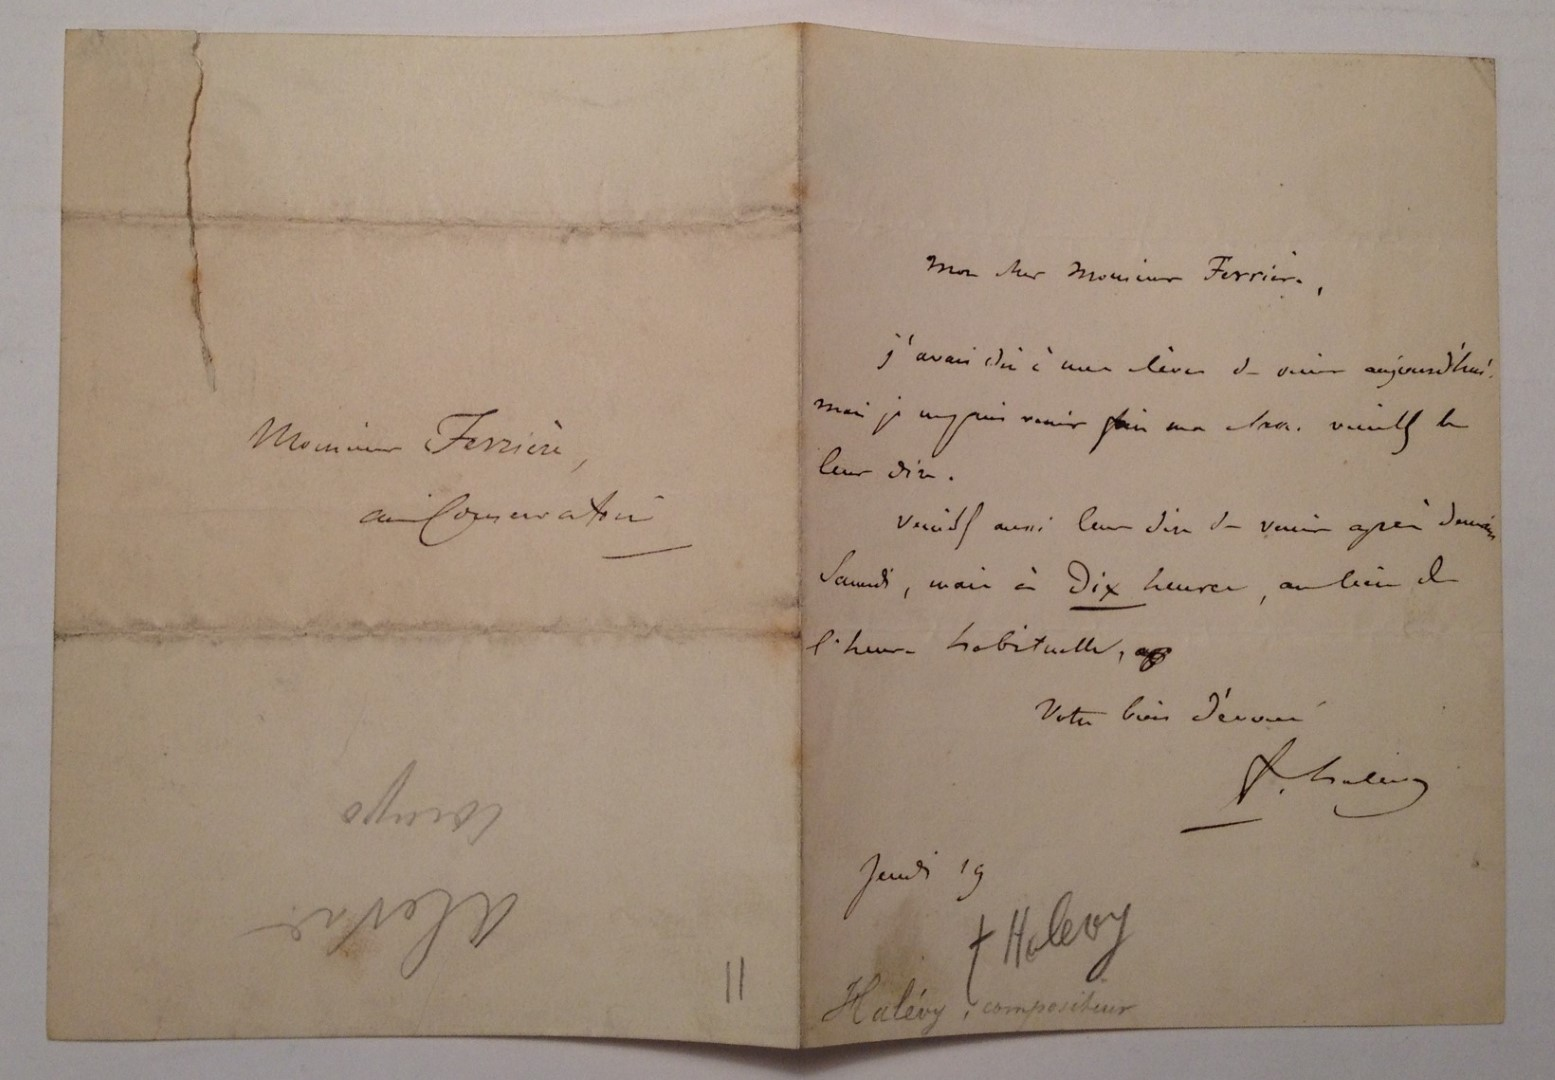 Apologetic Autographed Letter Signed by HALEVY, Jacques Fromental Elie Levy  on Argosy Book Store